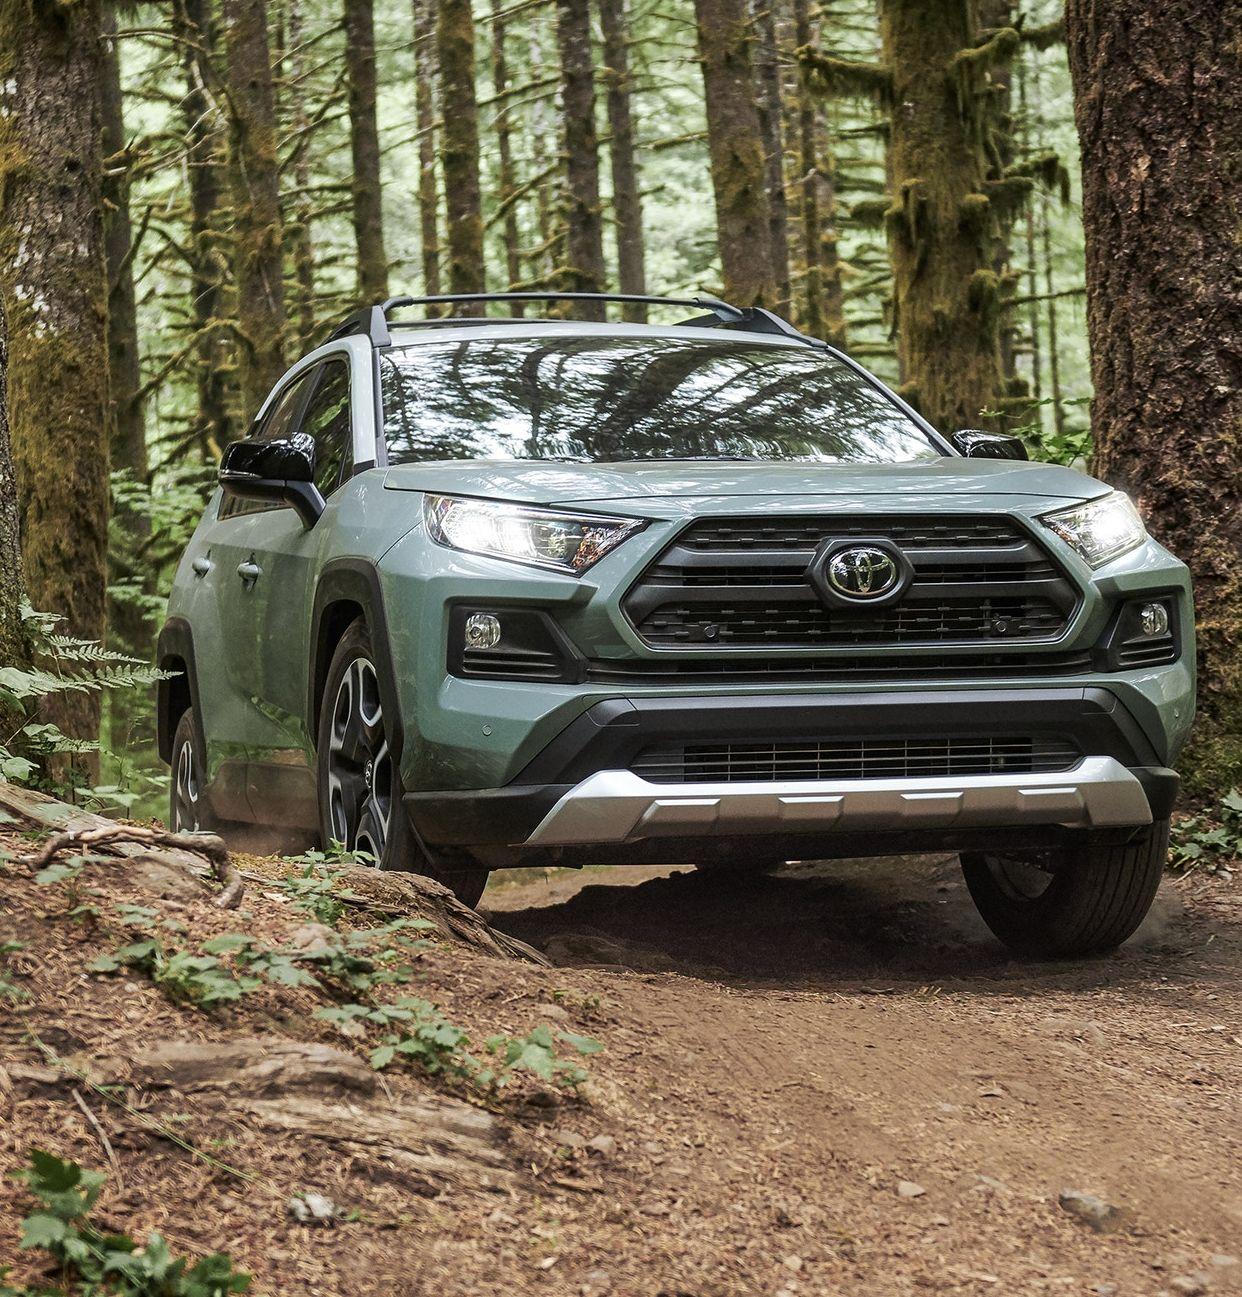 2019 Toyota RAV4 for Sale near Elmhurst, IL